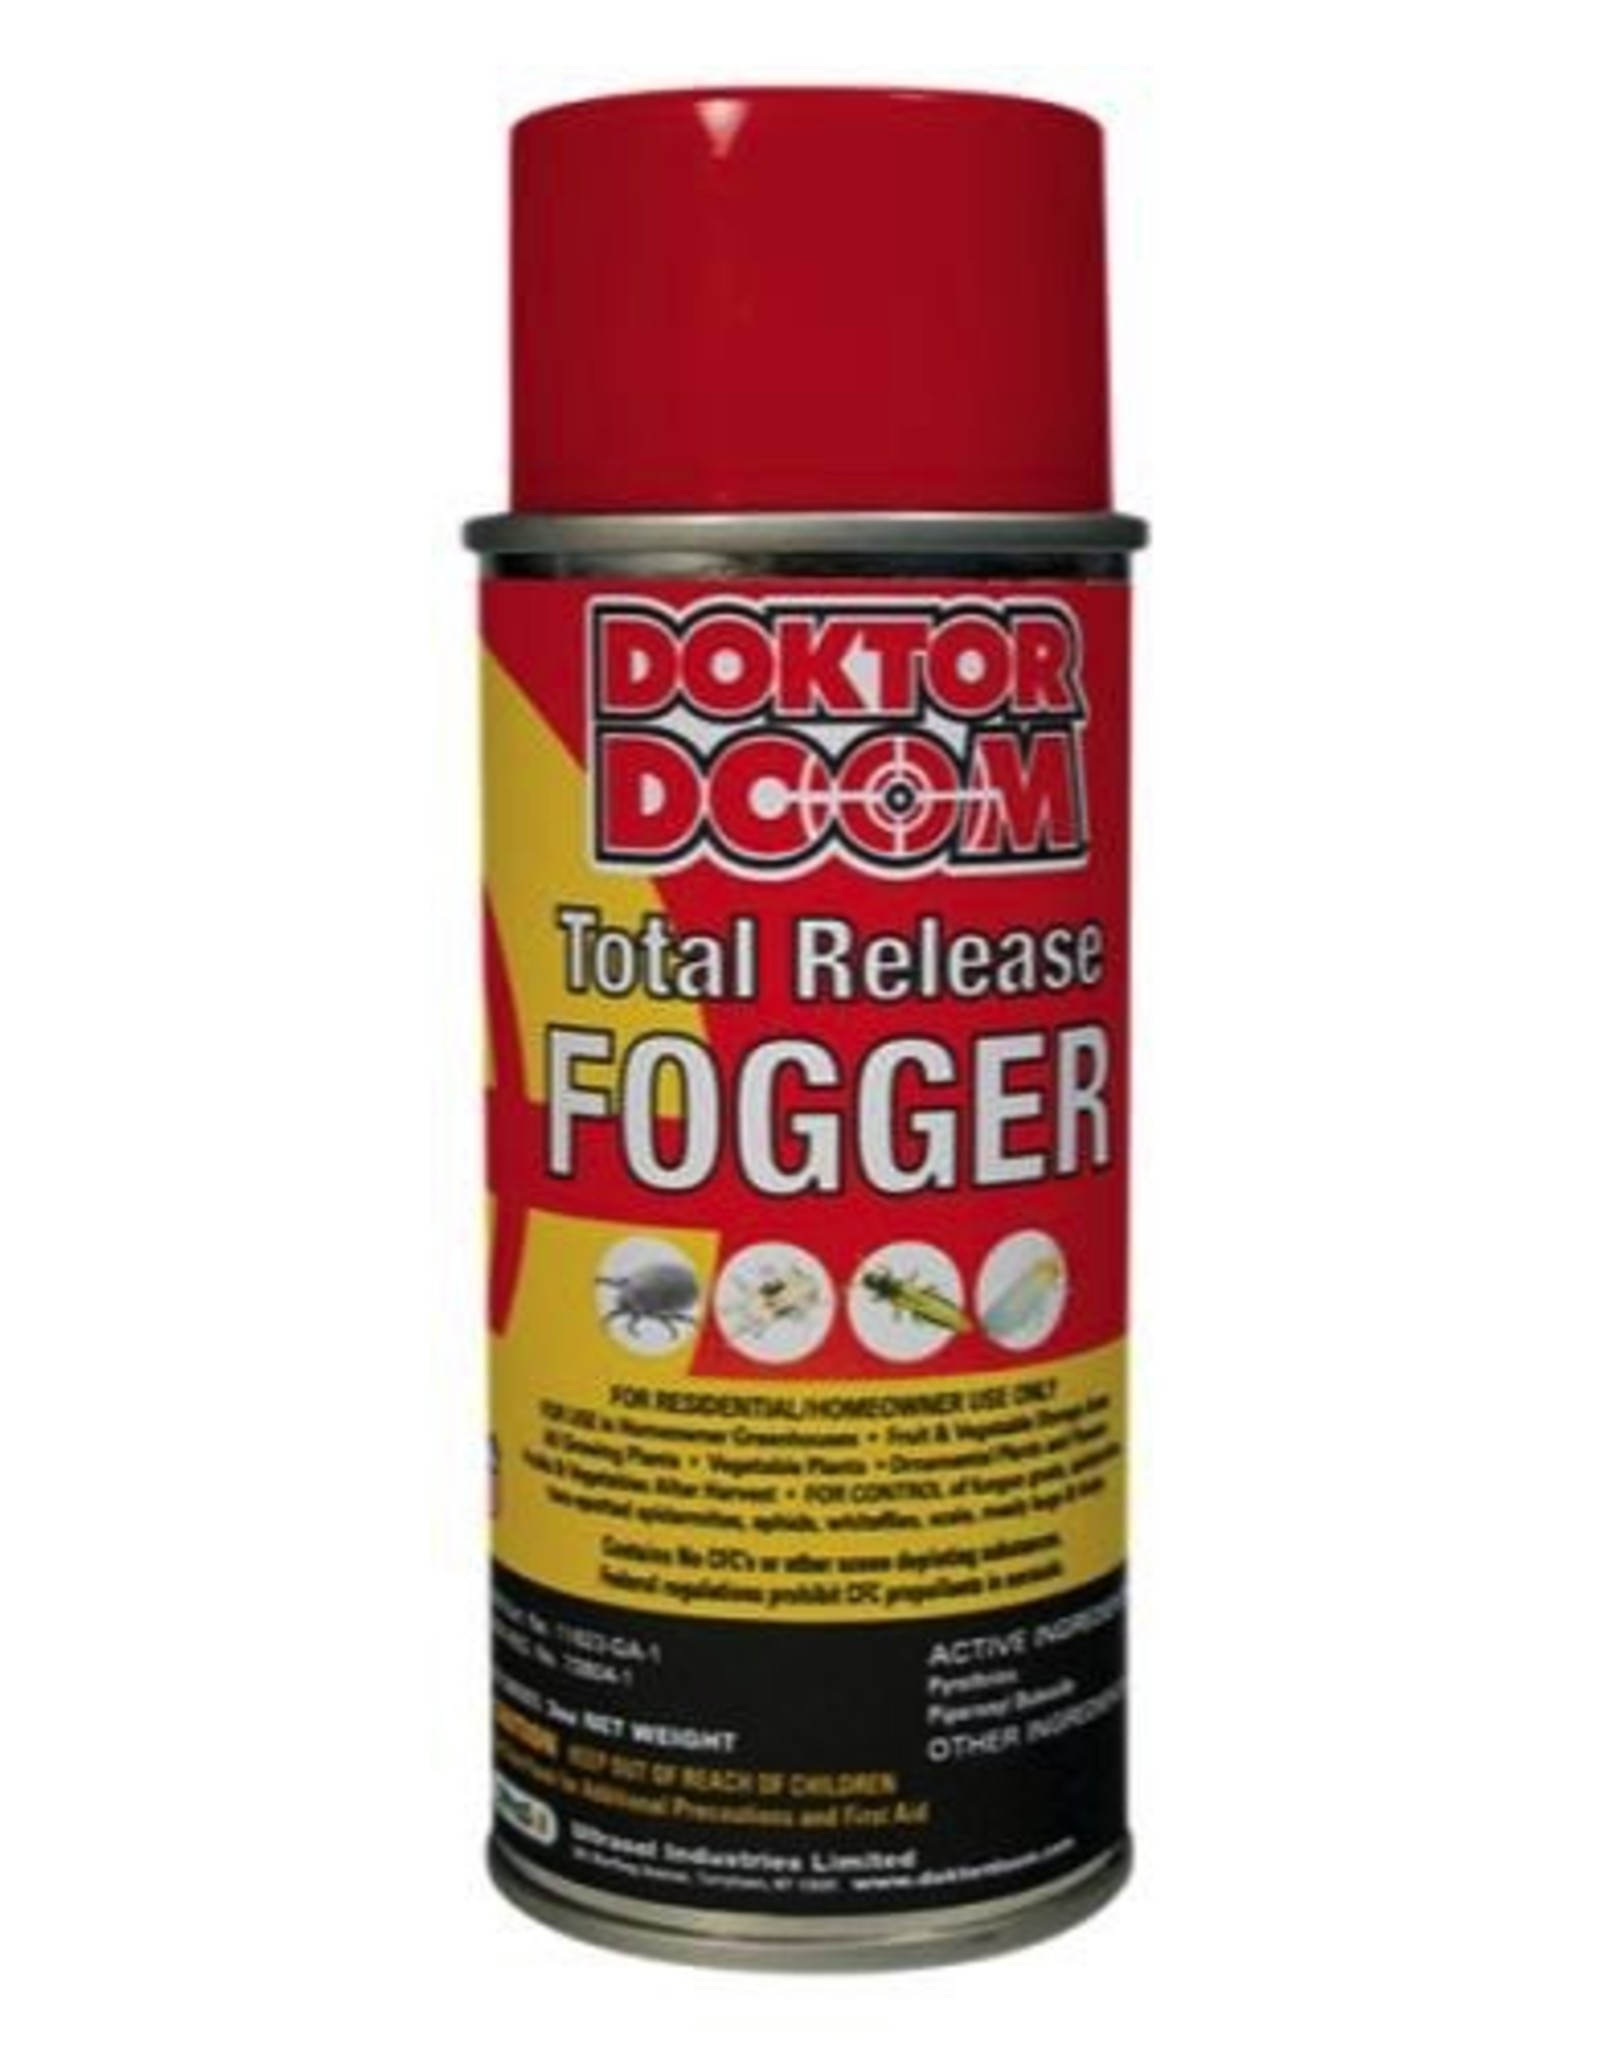 DOKTOR DOOM A total release fogger for use in homeowner greenhouses, fruit and vegetable storage areas and indoor gardening areas. Can be used with all ornamental plants, flowers, fruits and vegetables. Used for controlling fungus gnats, spider mites, two-spotted spi